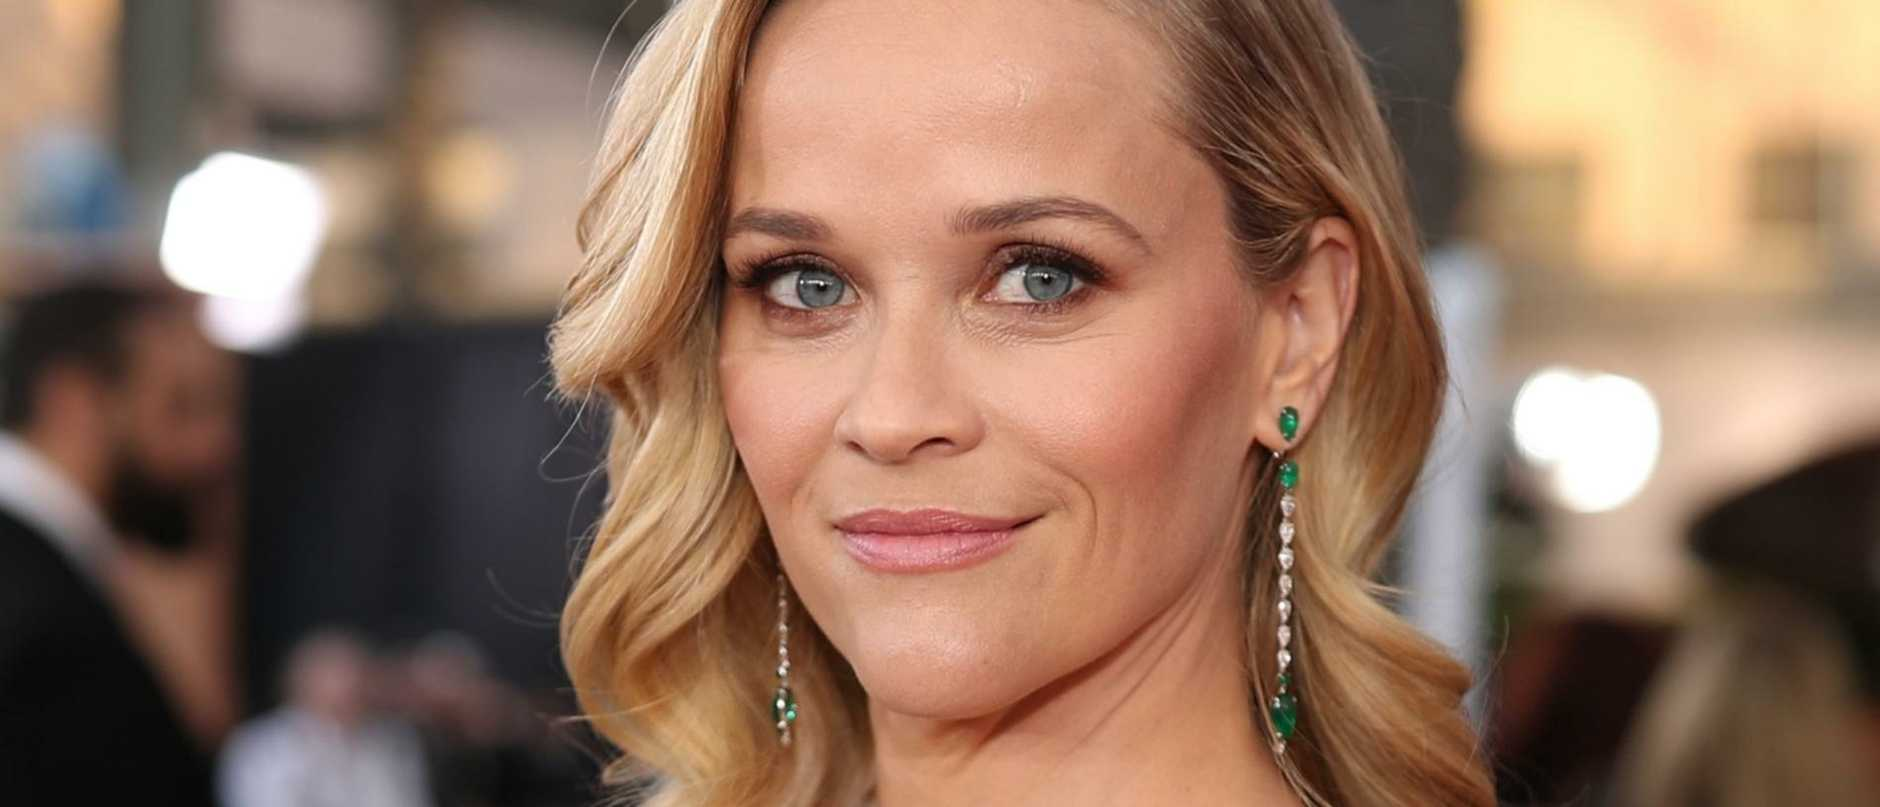 Reese Witherspoon has pocketed an eye-watering sum to star in a new show helmed by her husband – but behind the scenes, insiders are fuming.